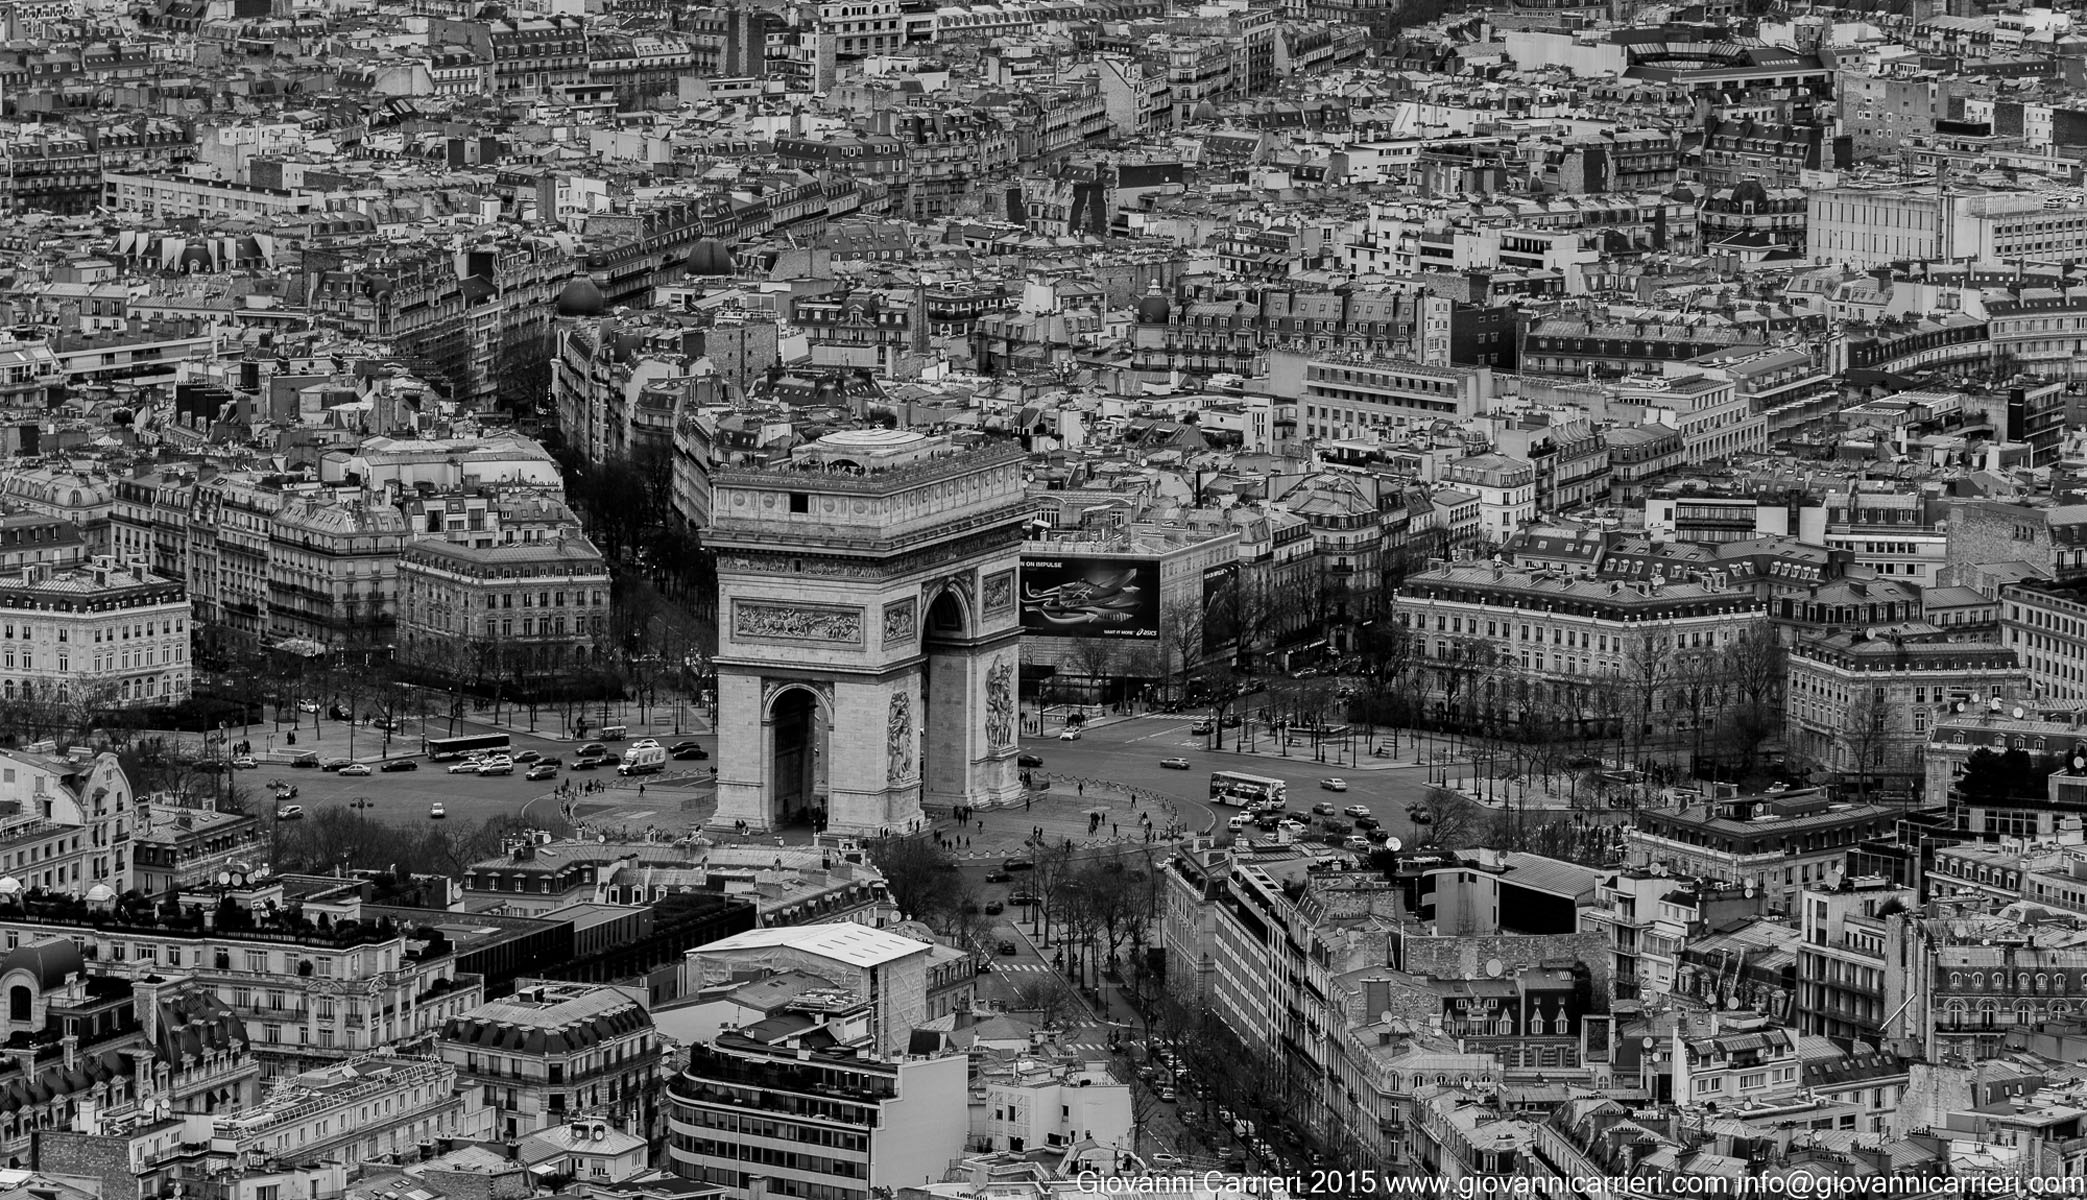 The Arc de Triomphe seen from the summit of the Eiffel Tower